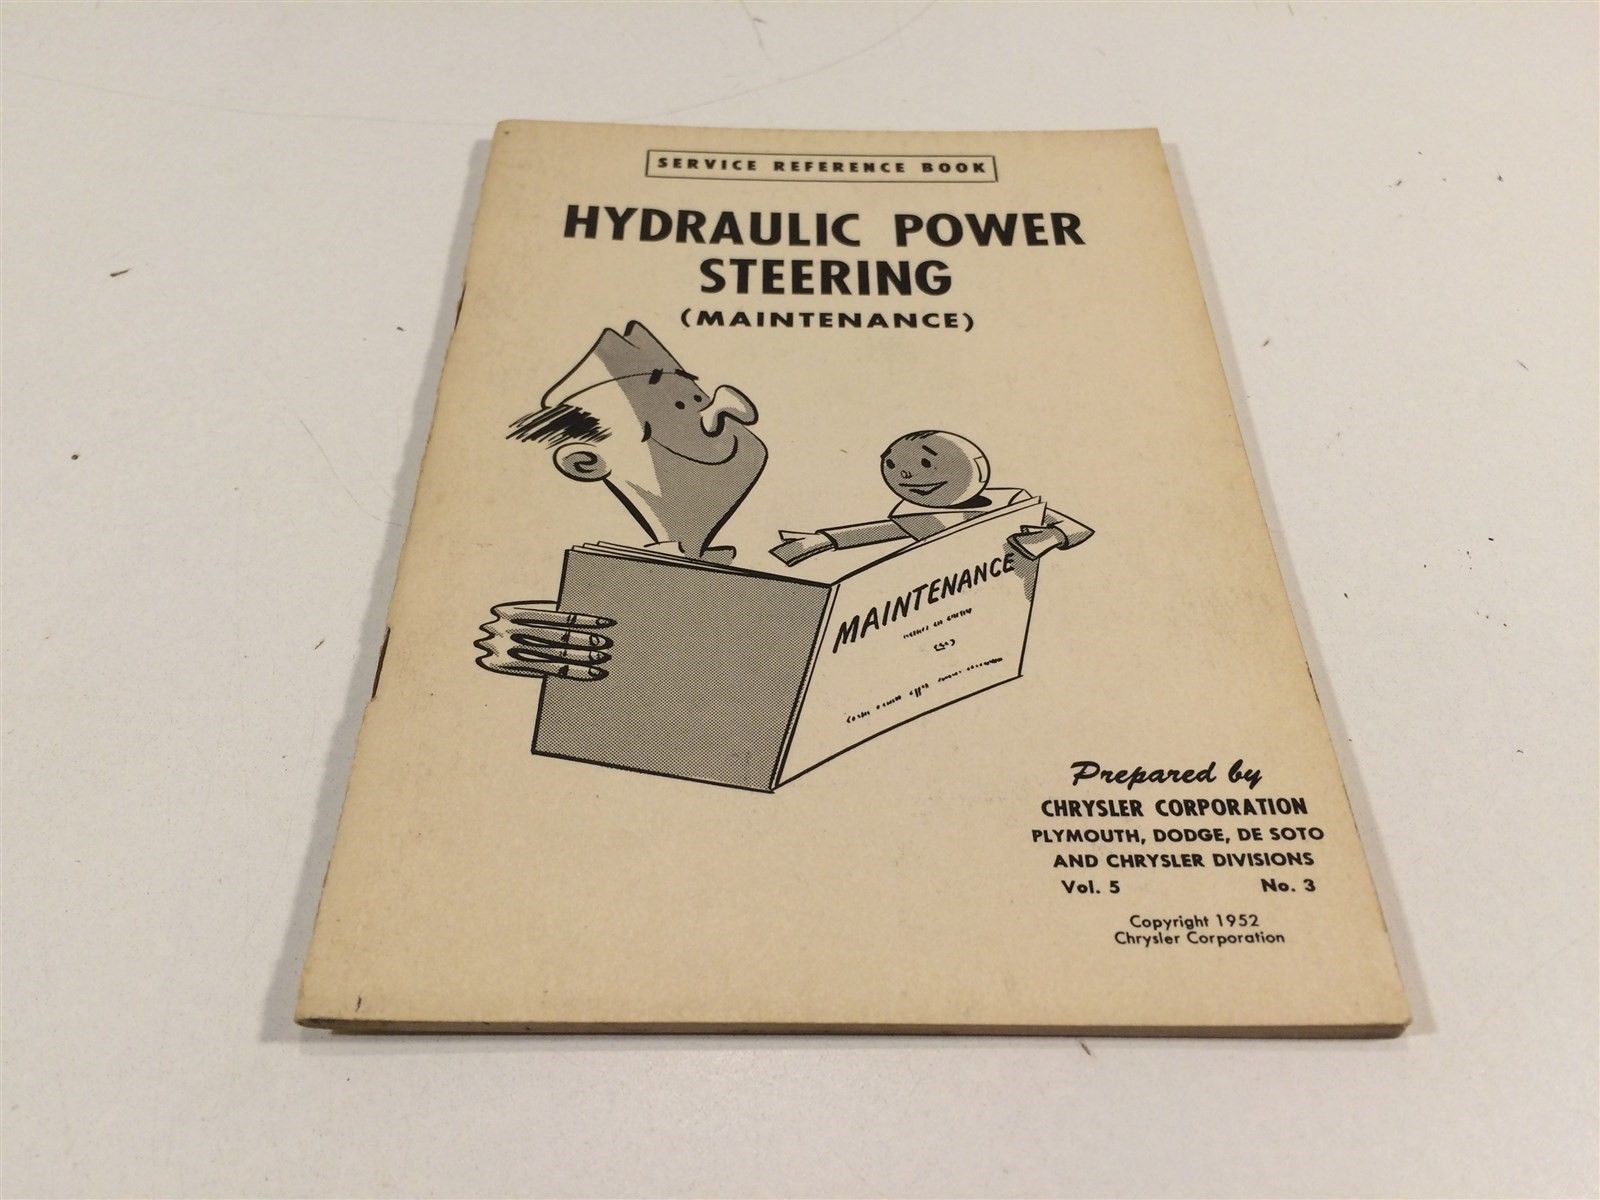 1952 Chrysler Corporation Service Reference Book V5 No3 Hydraulic Power Steering